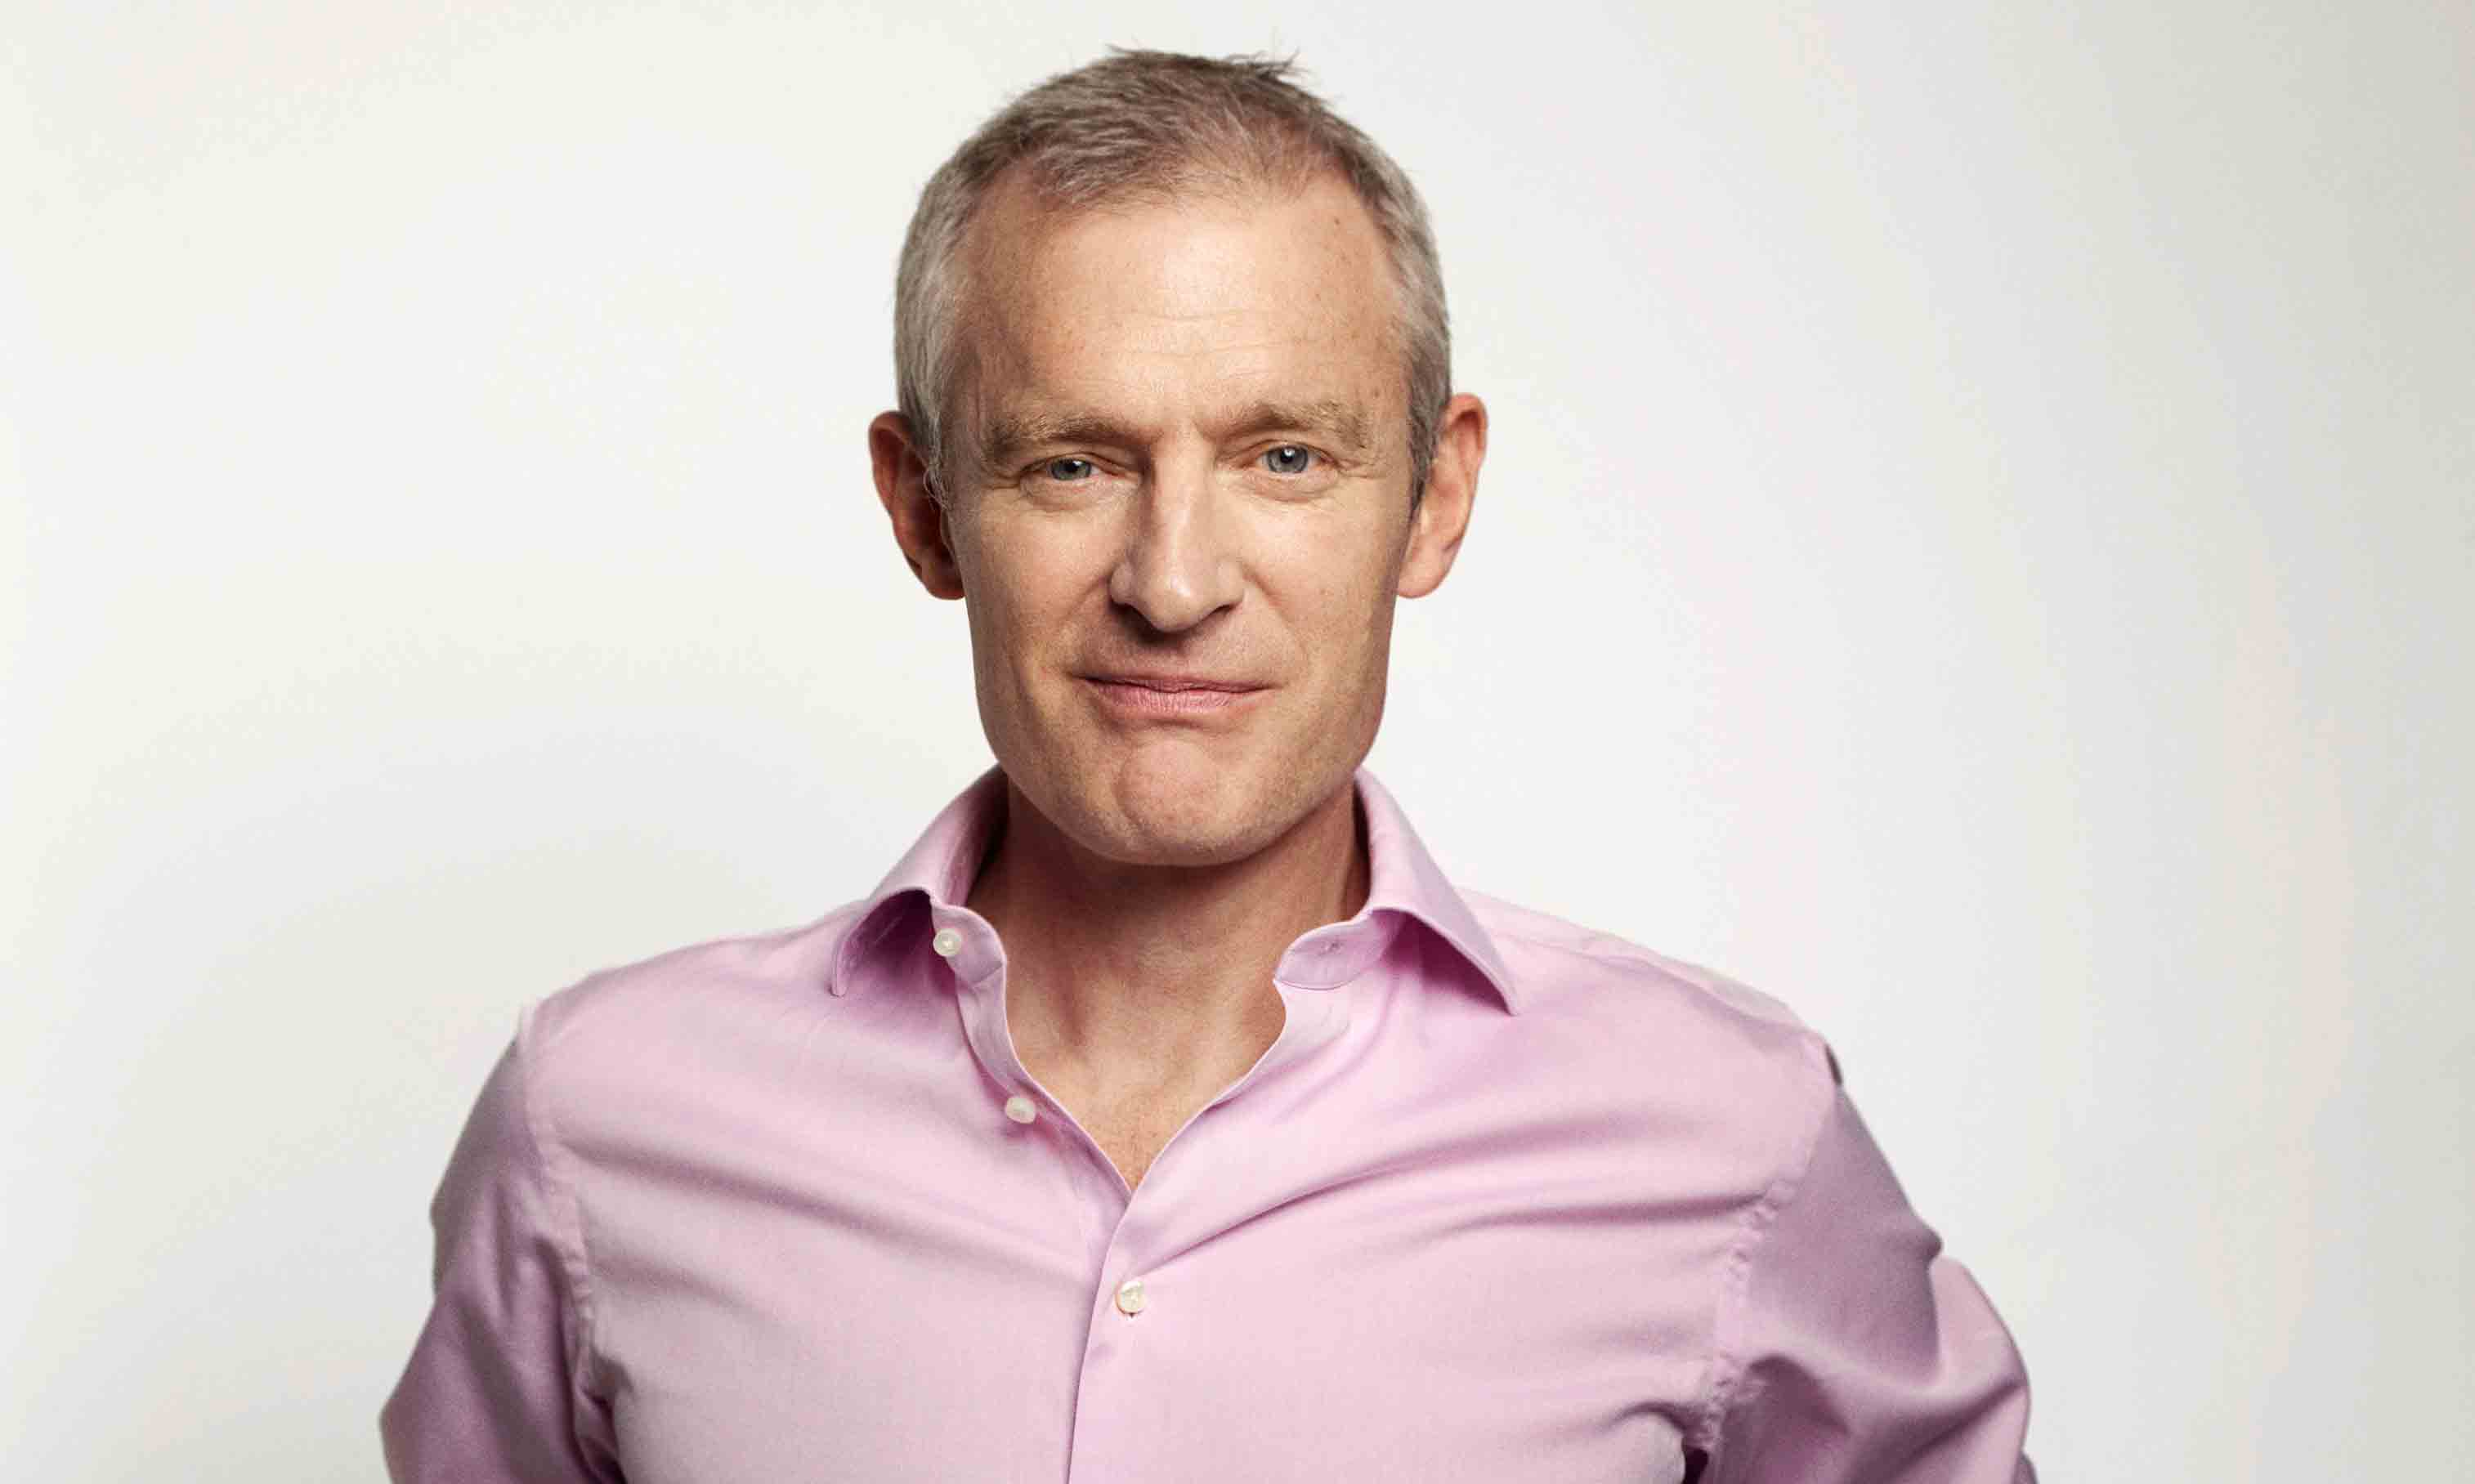 Join BBC presenter Jeremy Vine for talk about his early career in Coventry